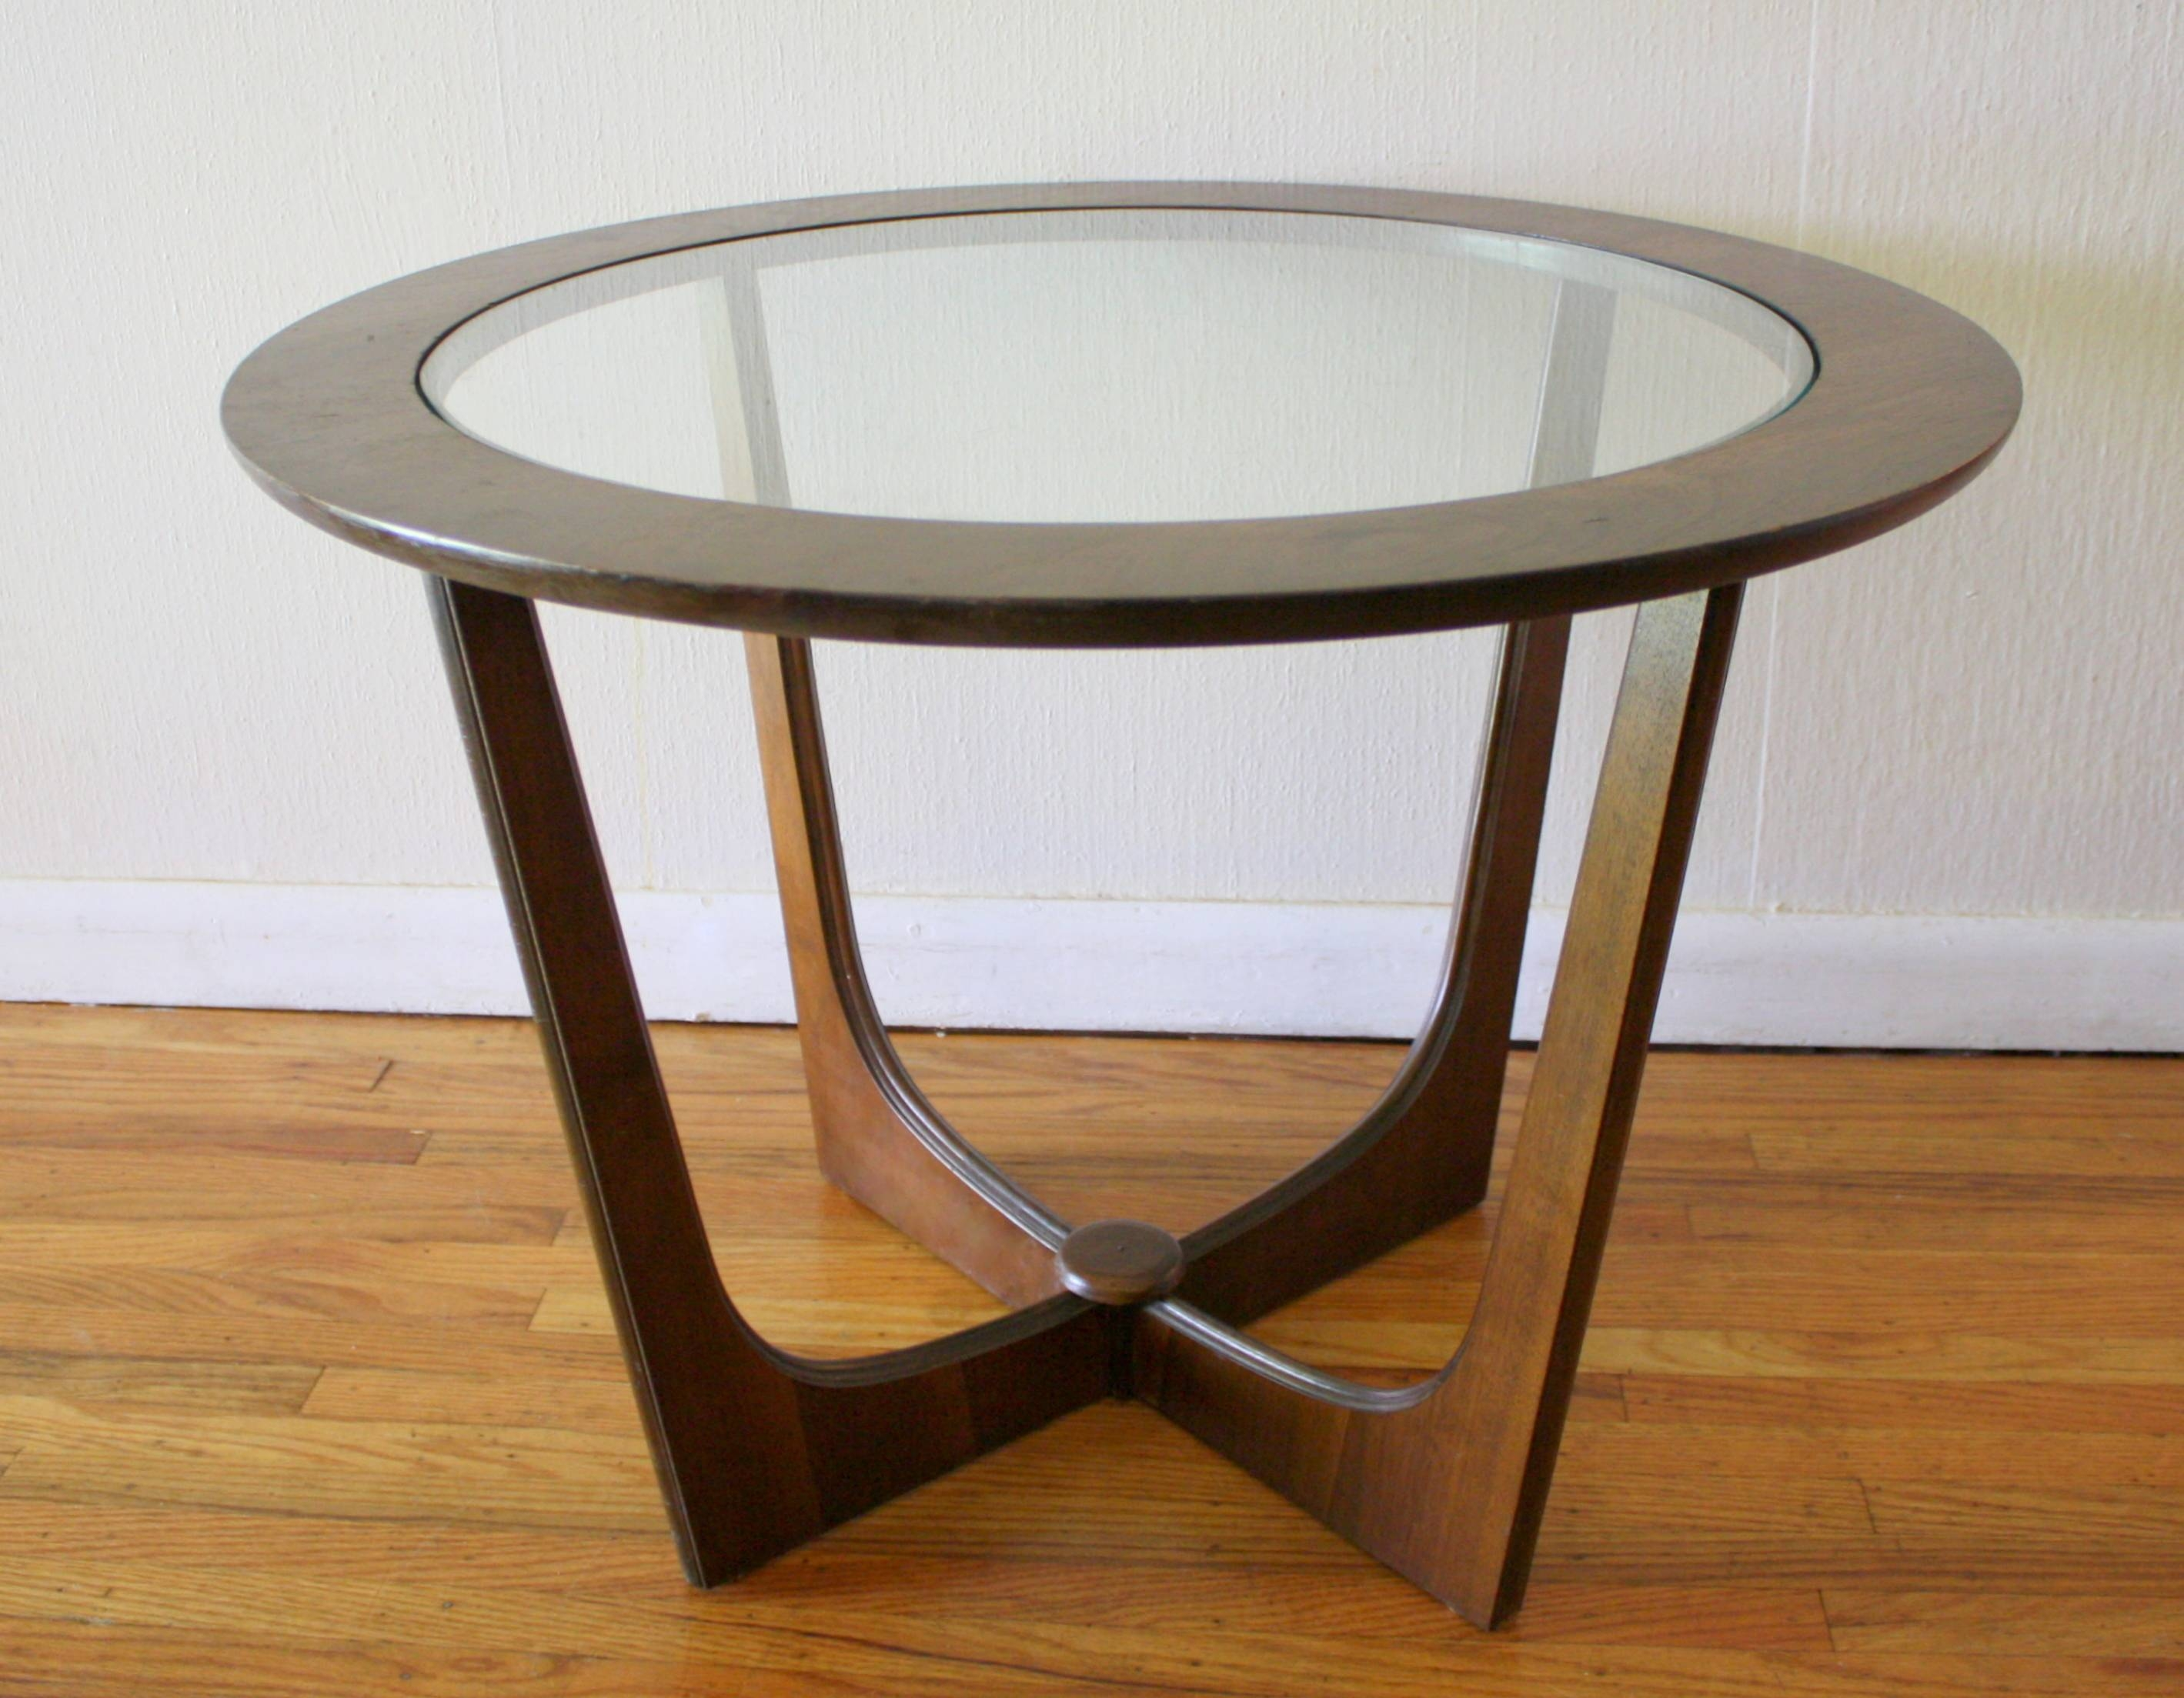 Glass Top End Tables Unique Coffee Tables Design Idea Brown Finish throughout Solid Round Coffee Tables (Image 19 of 30)